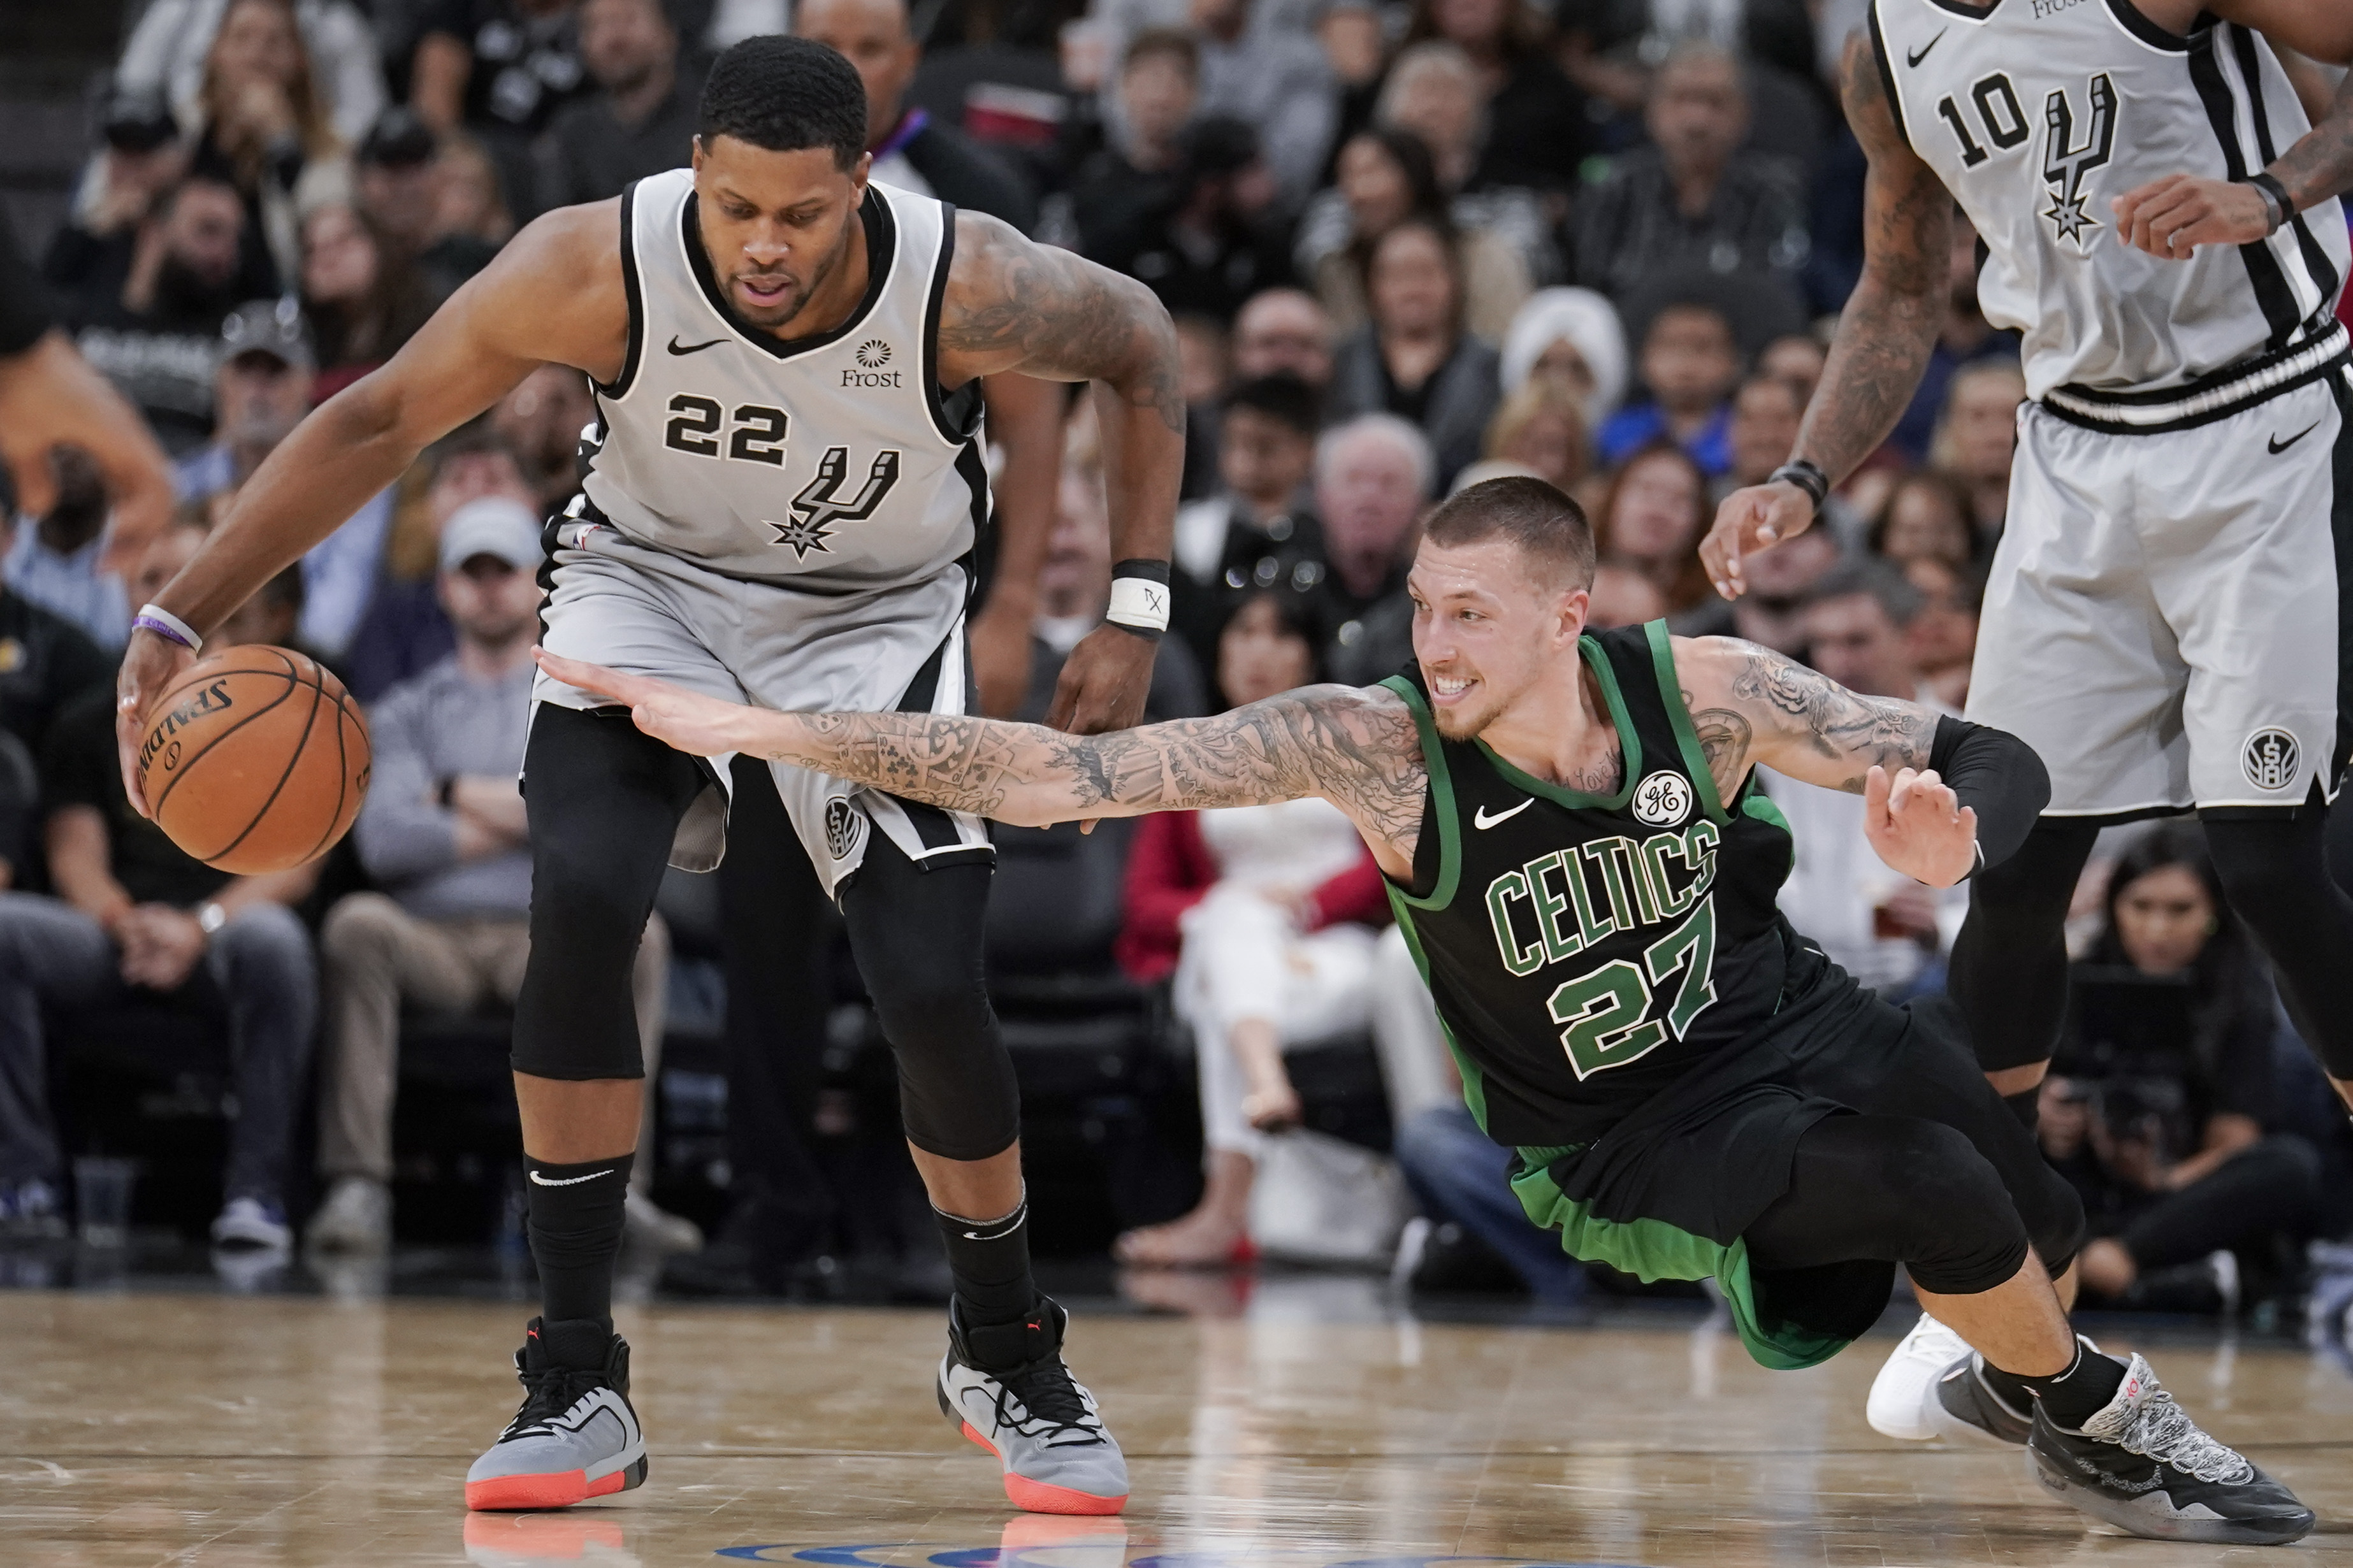 San Antonio Spurs' Rudy Gay (22) beats Boston Celtics' Daniel Theis for possession during the first half of an NBA basketball game, Saturday, Nov. 9, 2019, in San Antonio. (AP Photo/Darren Abate)